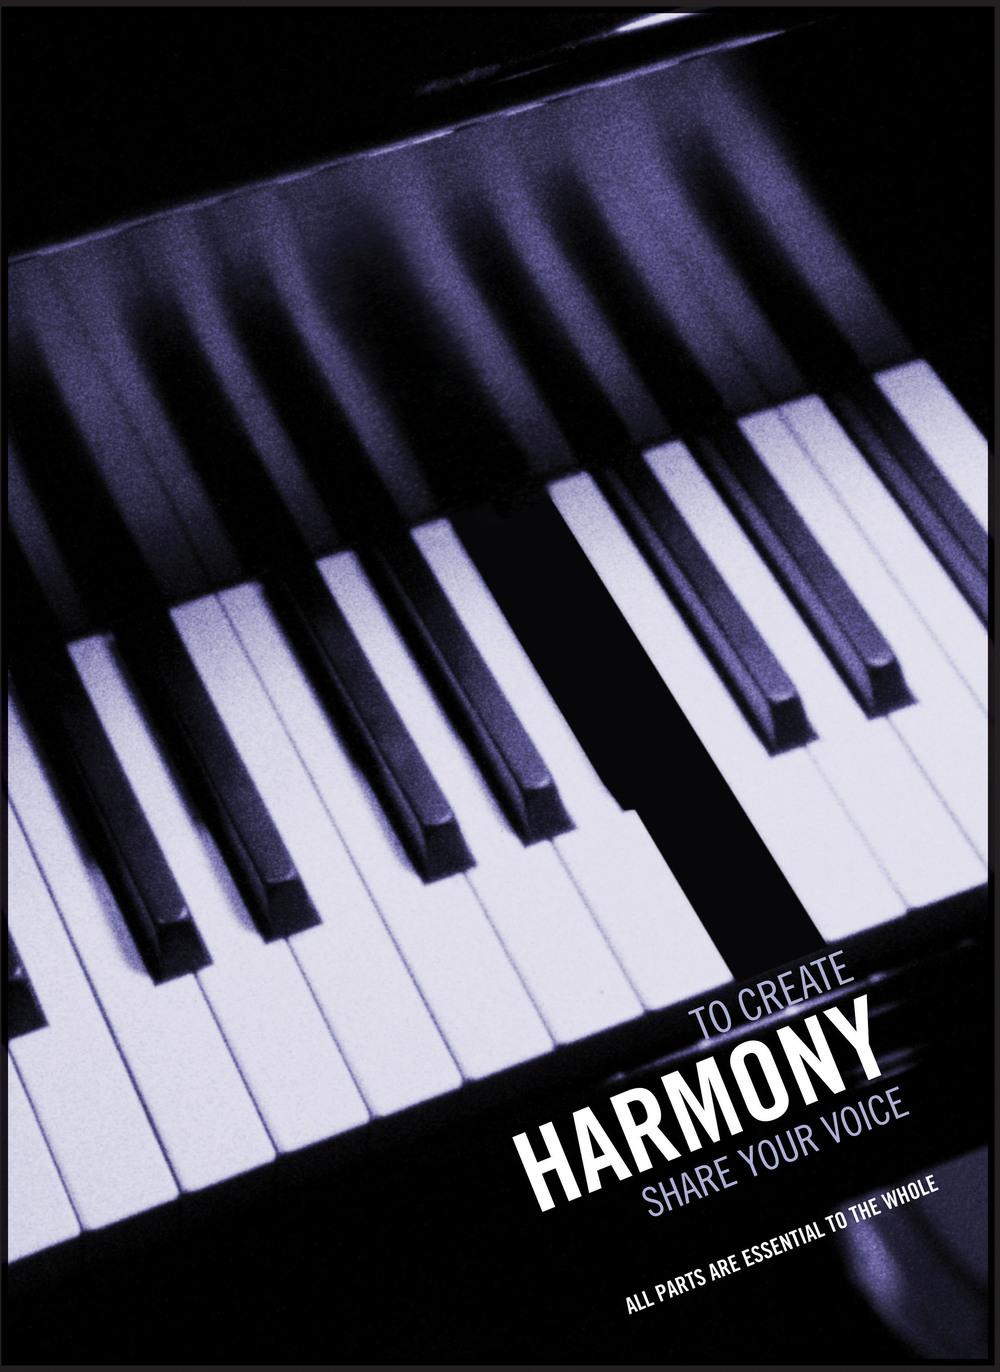 CHANTIX_Team_Heiku-piano.jpg